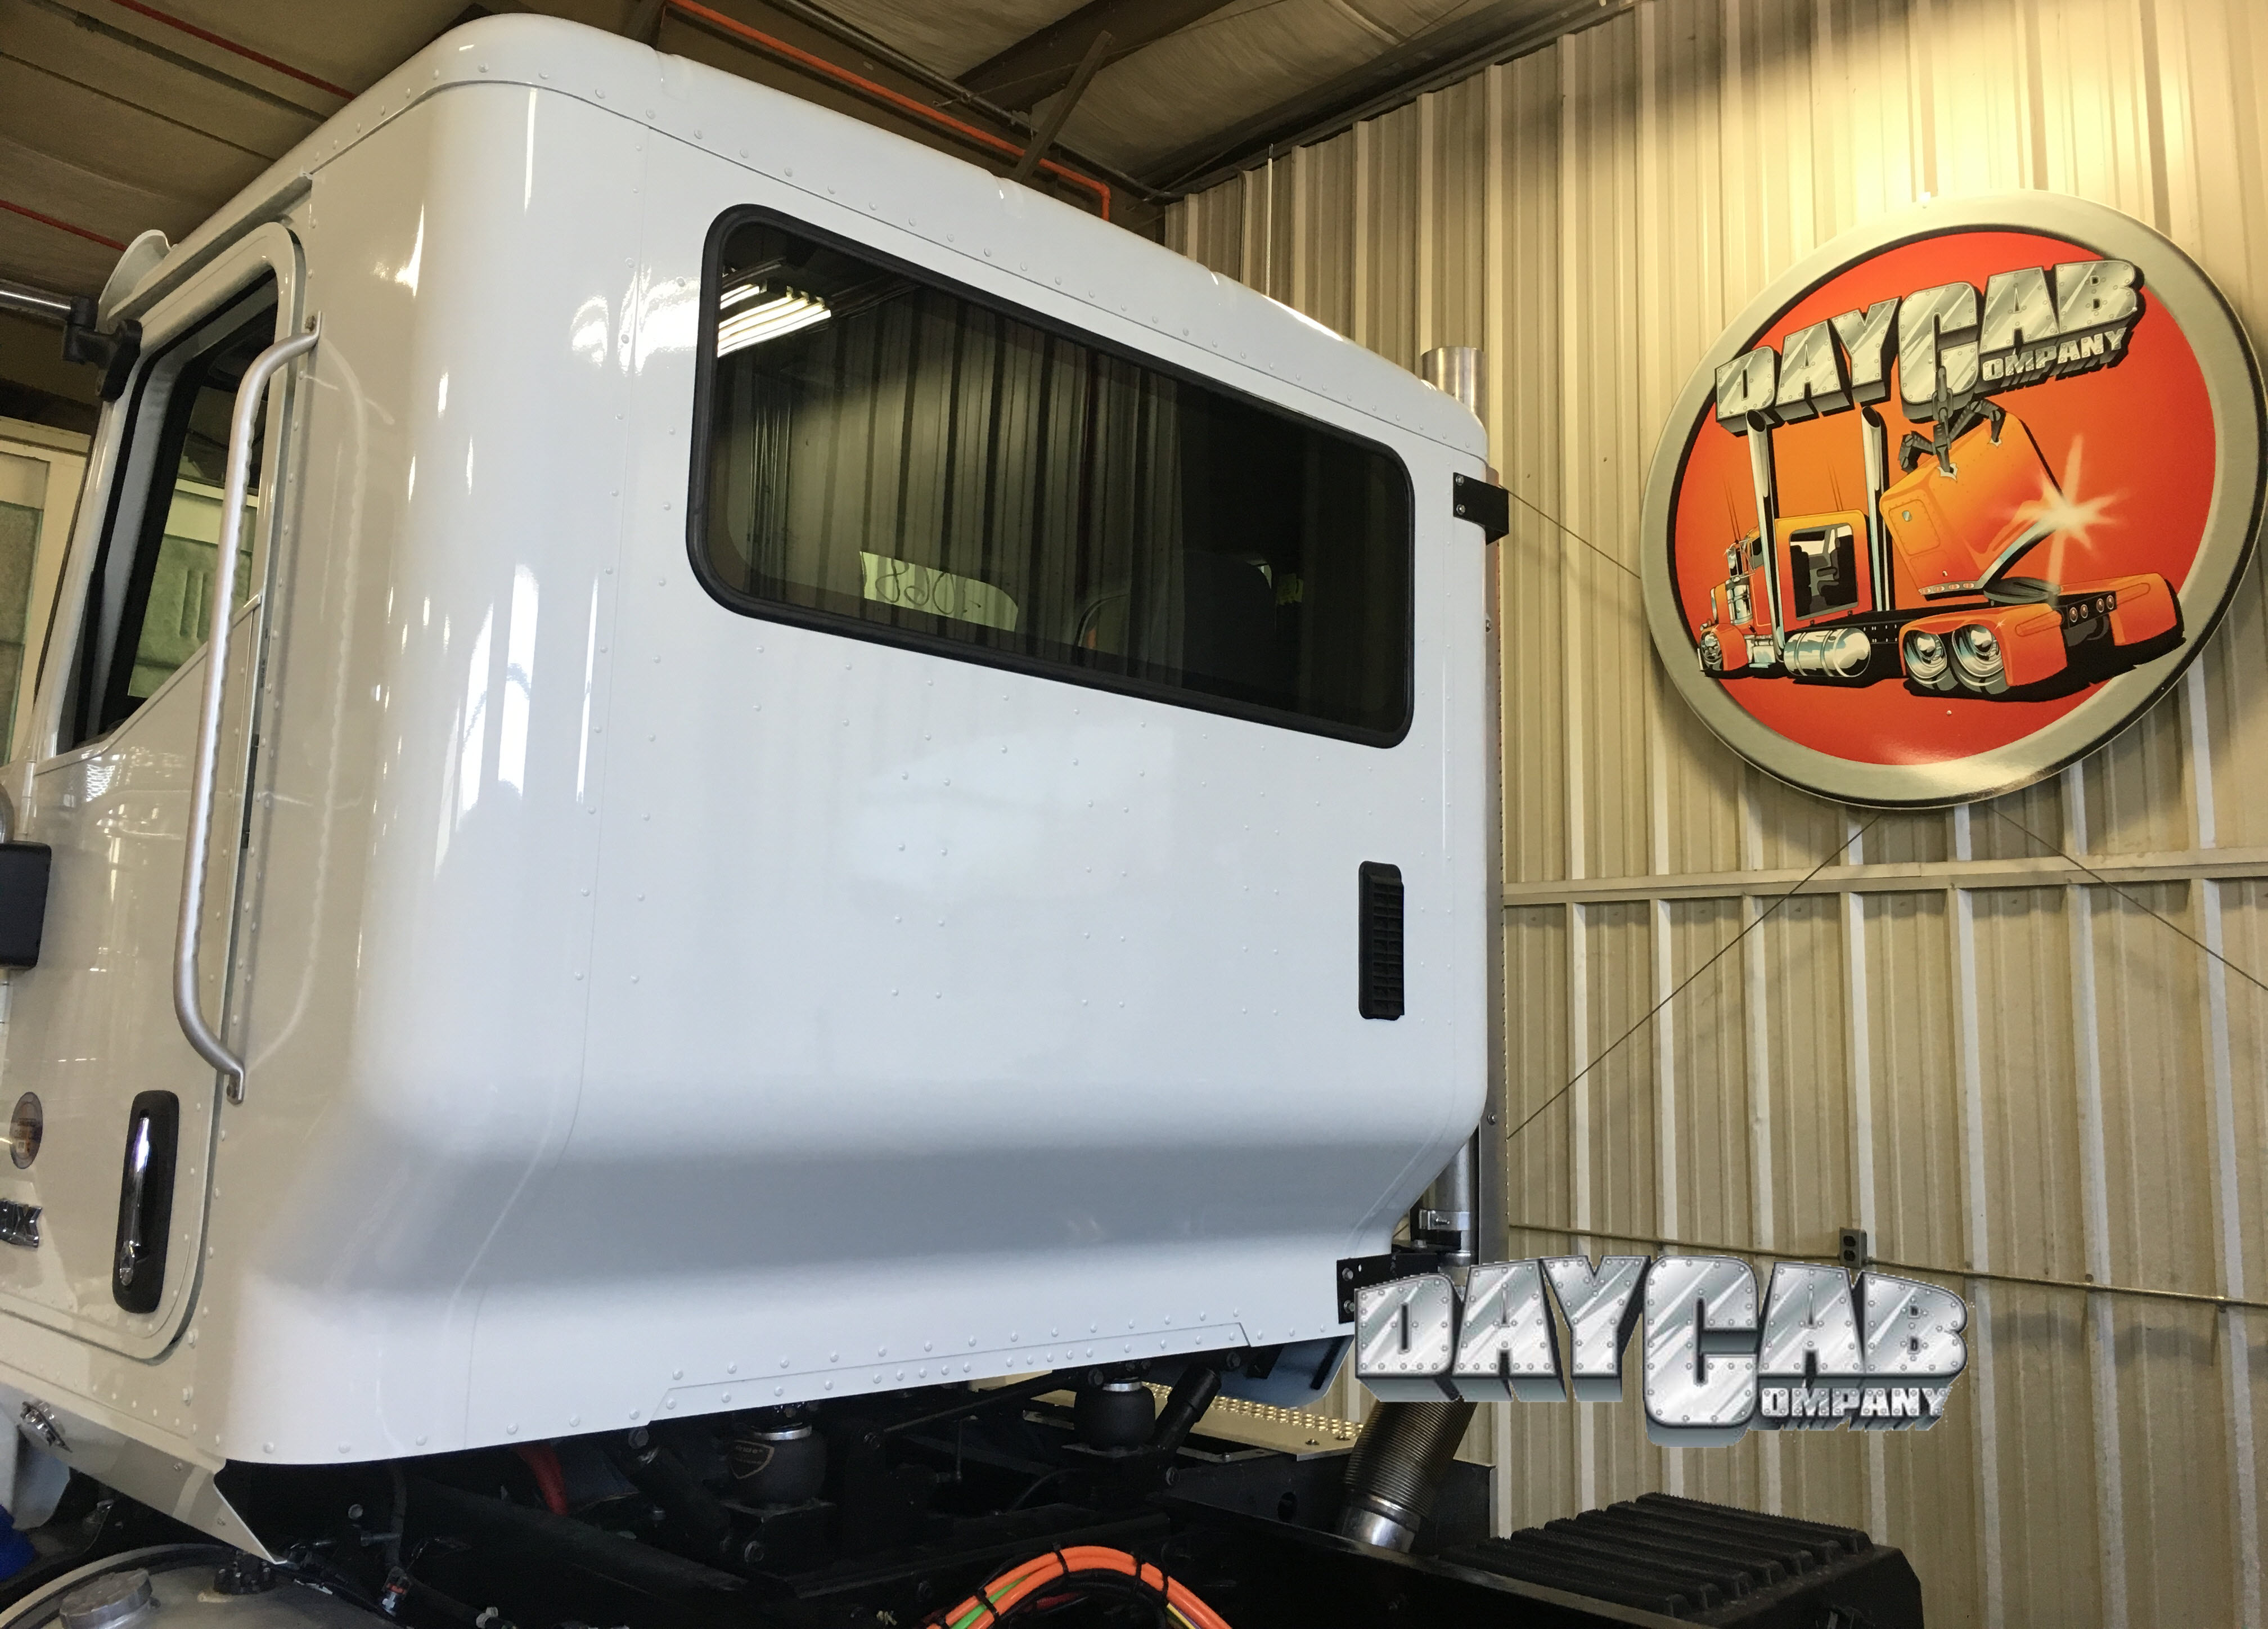 International HX Extended Day Cab - Daycab Company